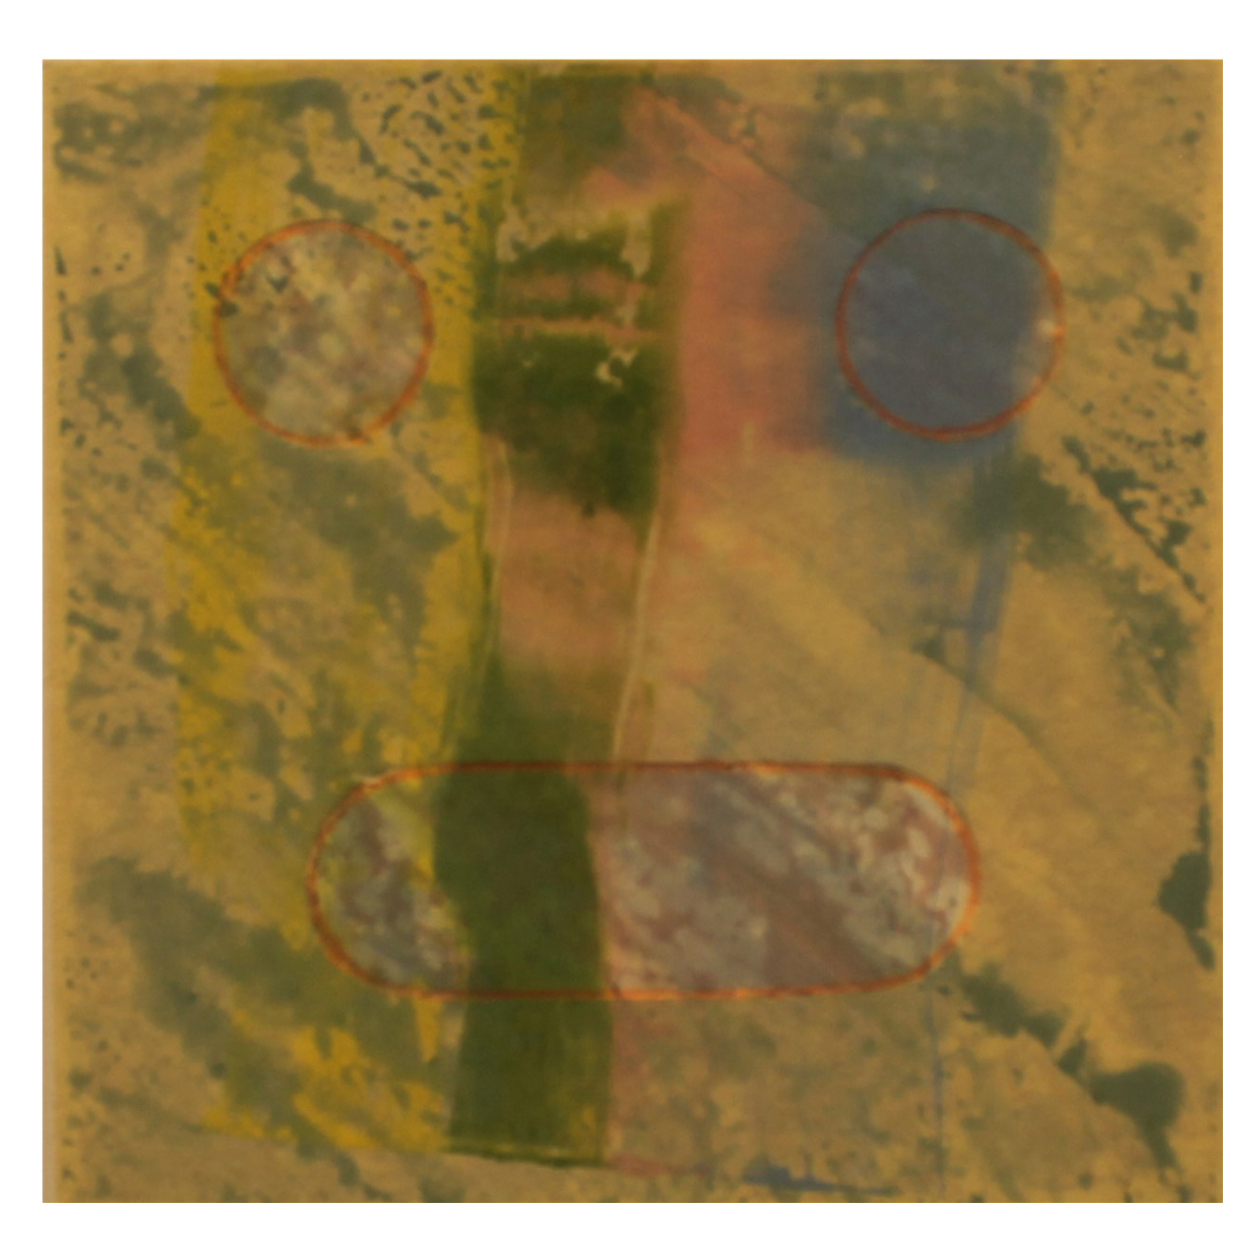 Eric Mummery, Face Ghost vi, 2016, monotype, chine colle